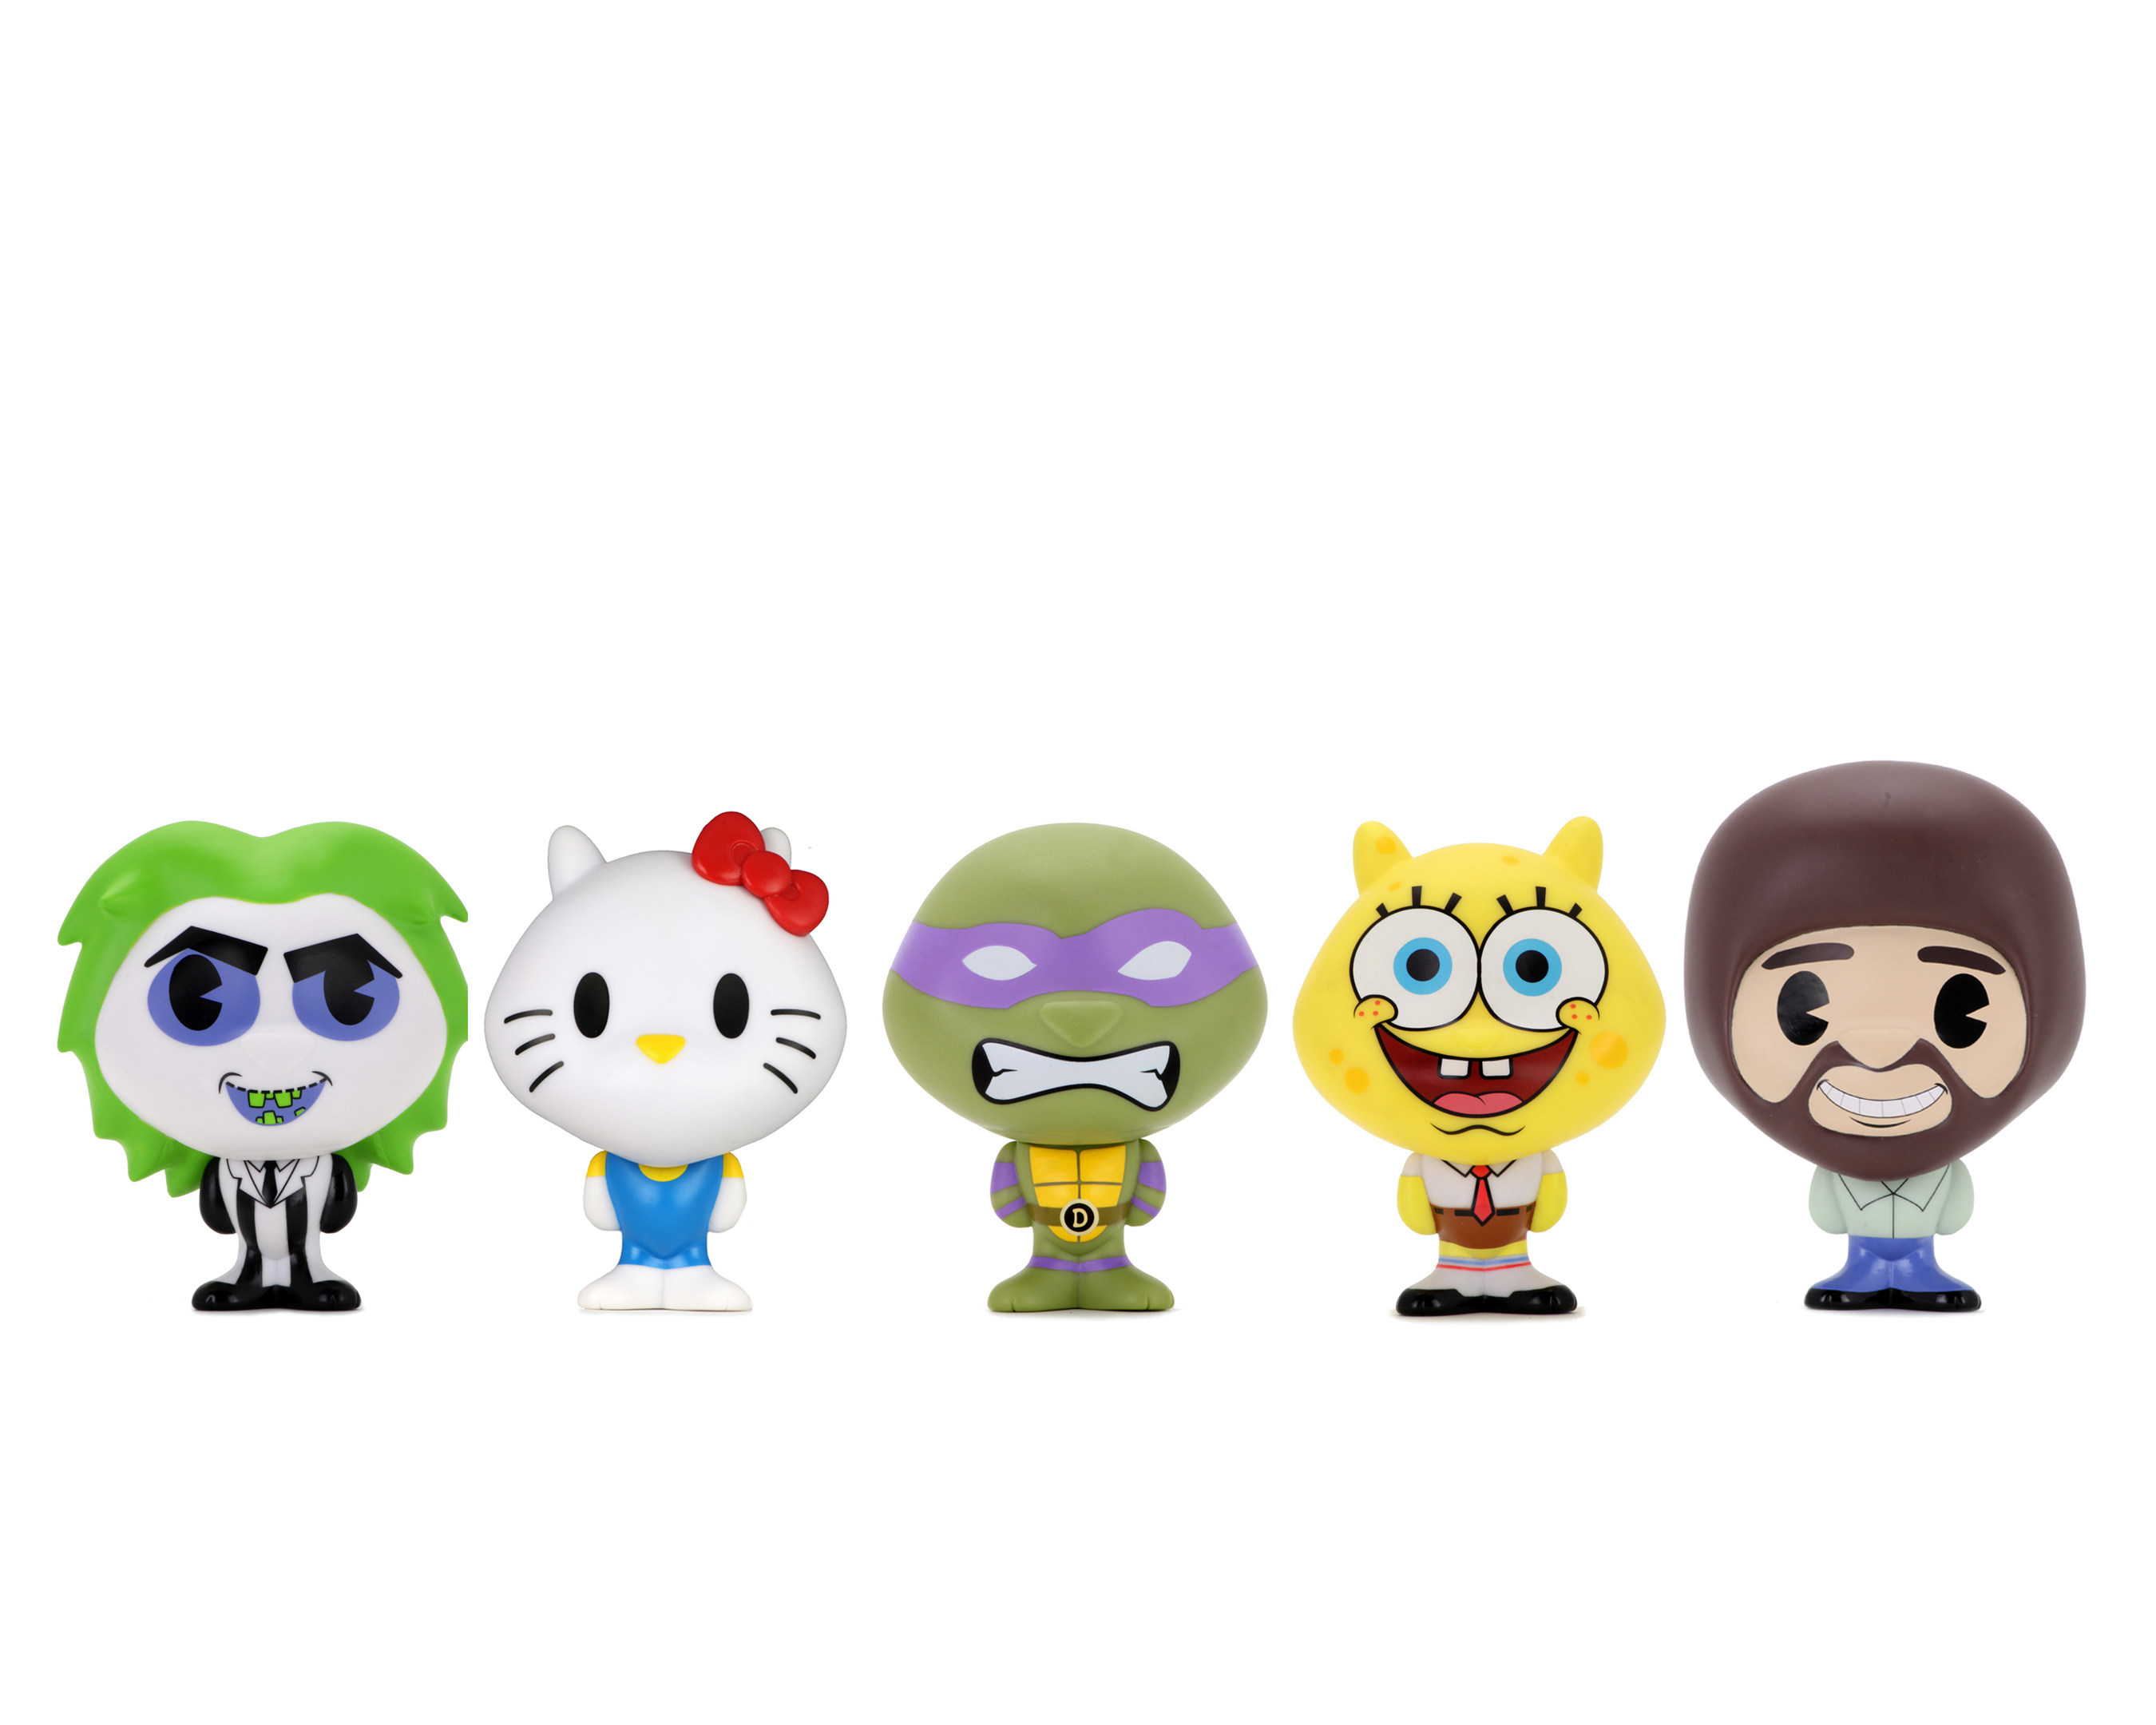 Kidrobot Elevates Vinyl With New, Limited-Edition Bhunny Figures--Series Debuts With Six Iconic Characters